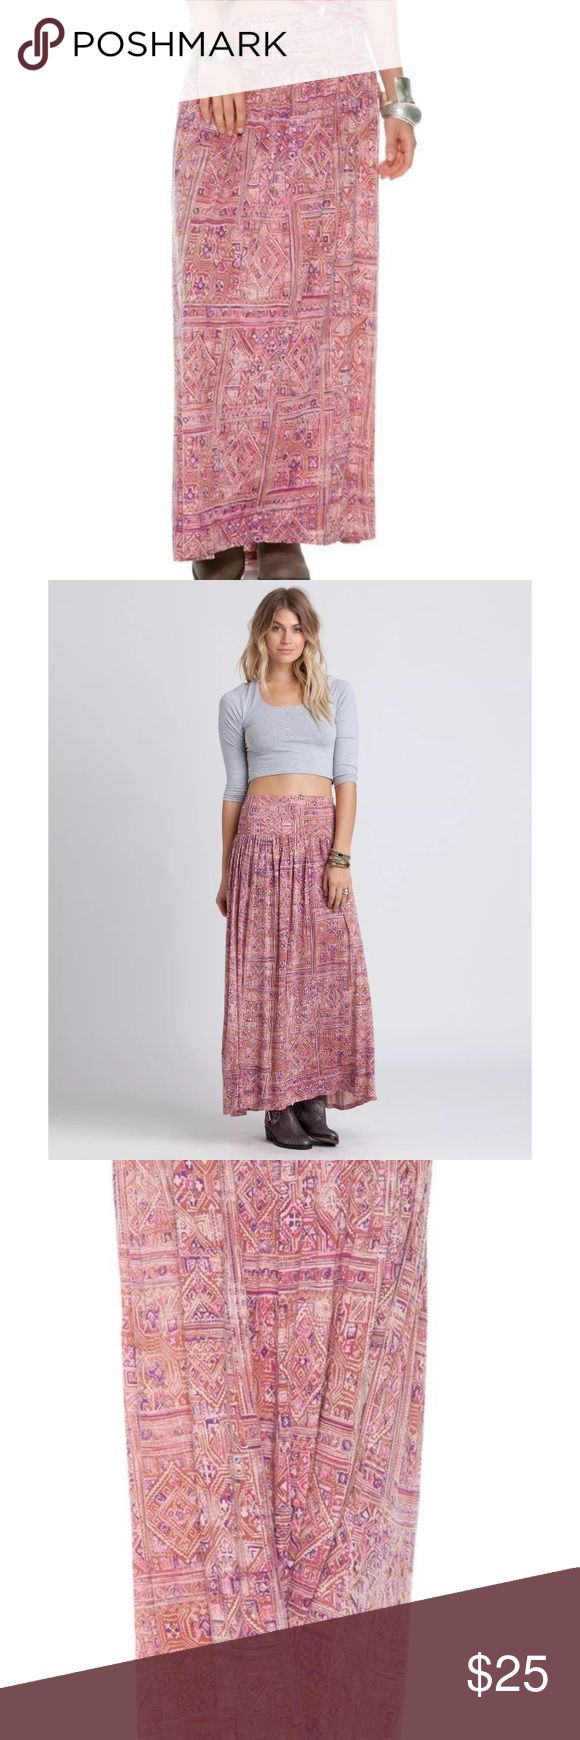 Billabong How Sincere Printed Maxi Skirt Size S Billabong How Sincere Printed Maxi Skirt Size Small $49  RI  	•	Knit maxi skirt. 	•	 Wide elastic waistband.  	•	Light pleating.  	•	Slight high low hemline. 	•	 Allover print.  	•	Length from center front to hem: 36 inches, back: 37.5 inches.  	•	100% Viscose.  	•	Hand wash. 	•	 Imported. Billabong Skirts Maxi